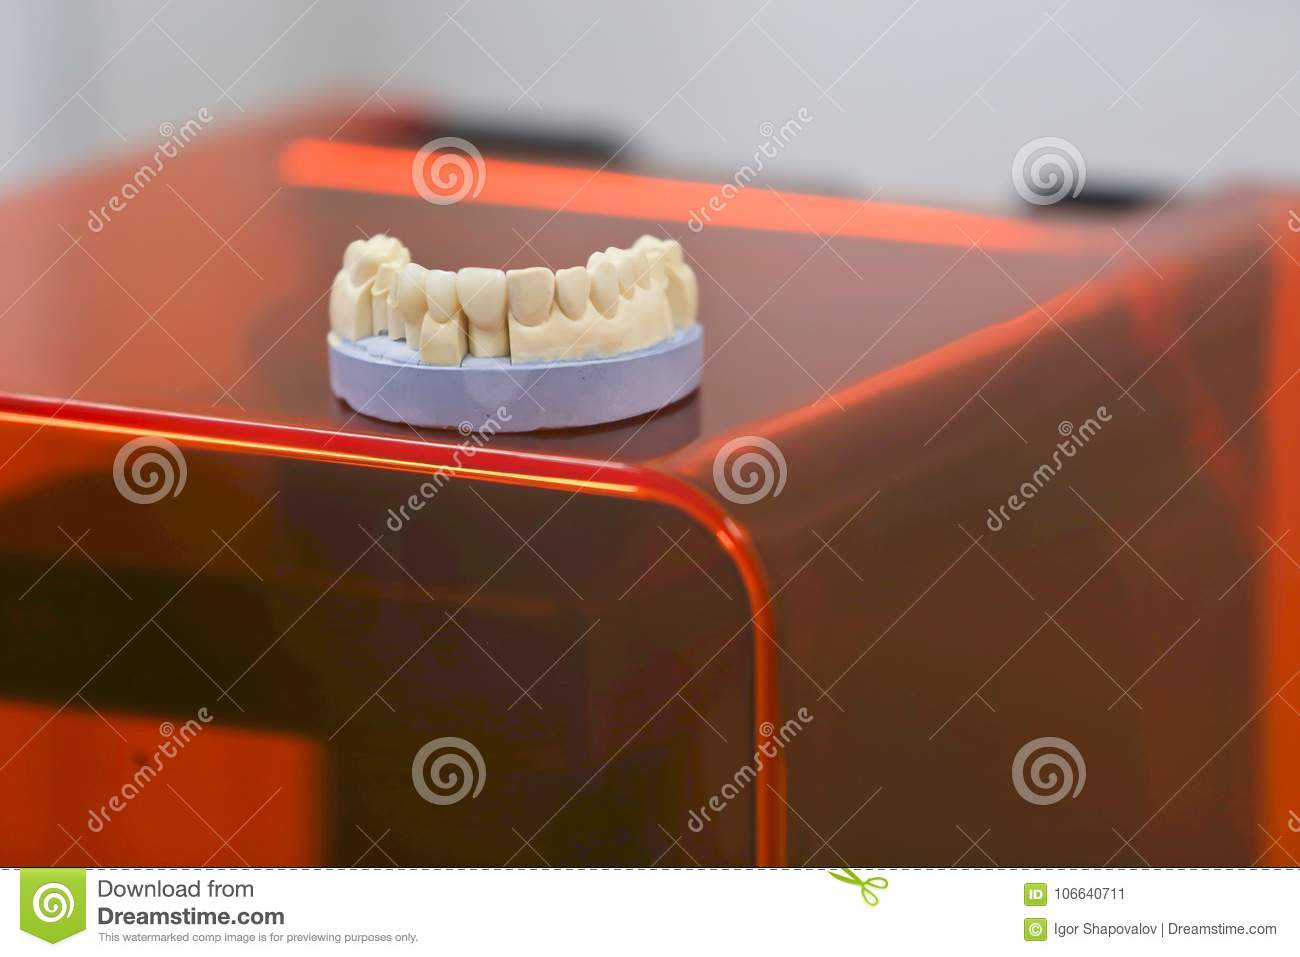 The Lower Jaw Of A Man, Created On A 3d Printer From A